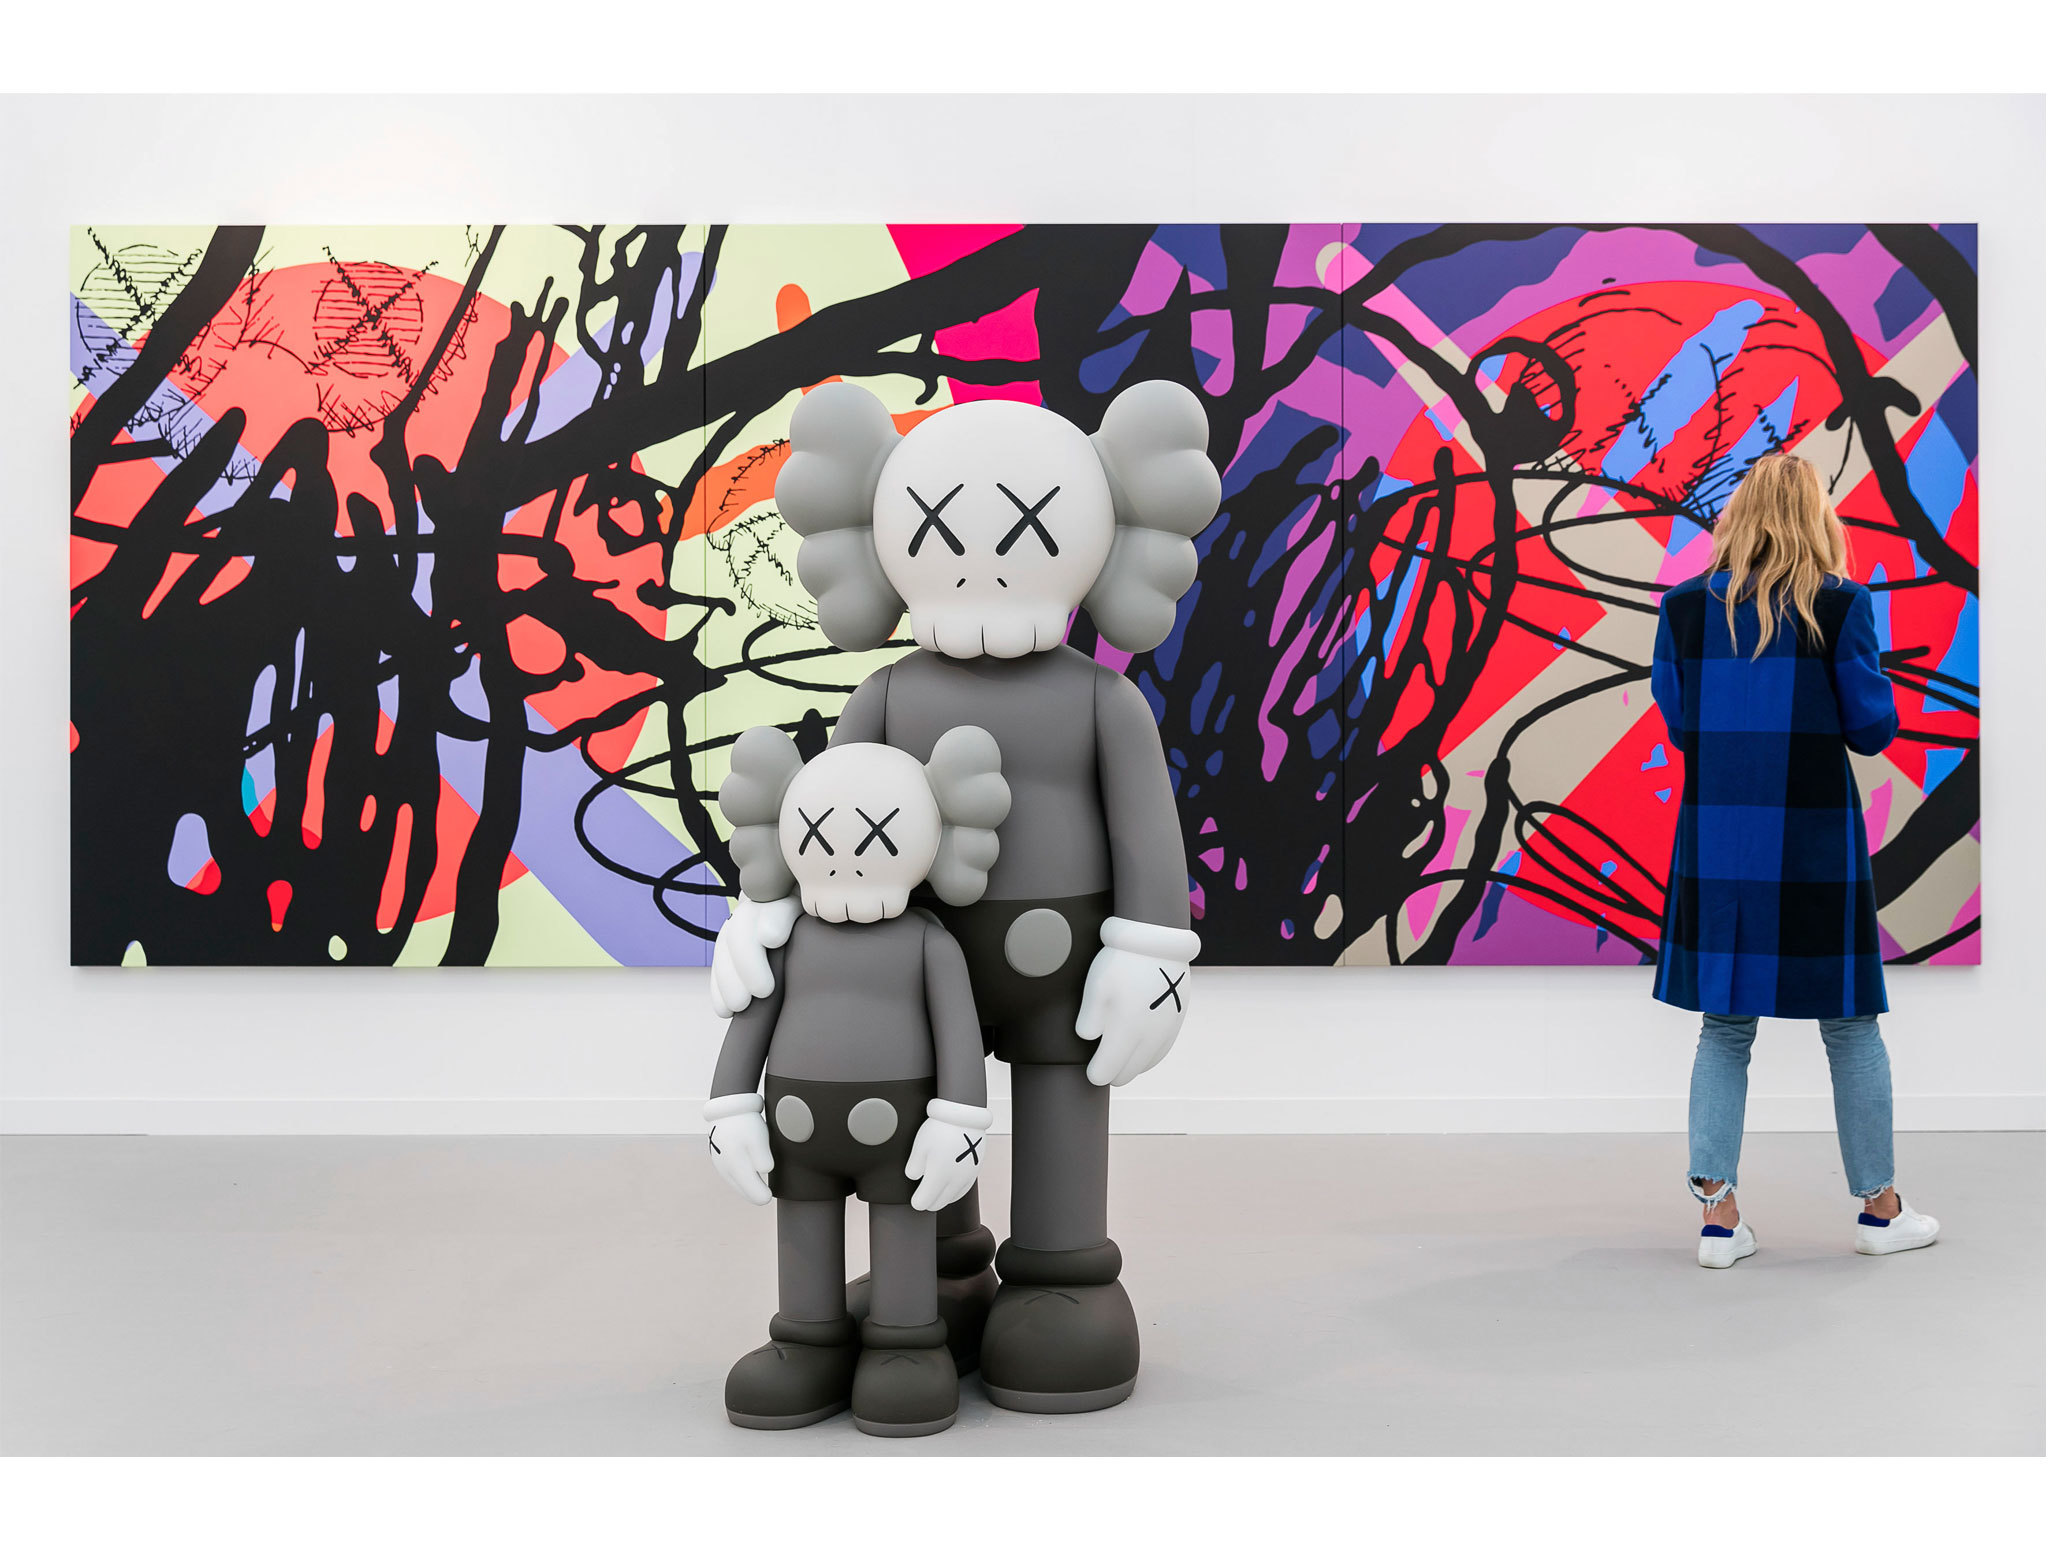 9 exhibitions to get excited about this autumn